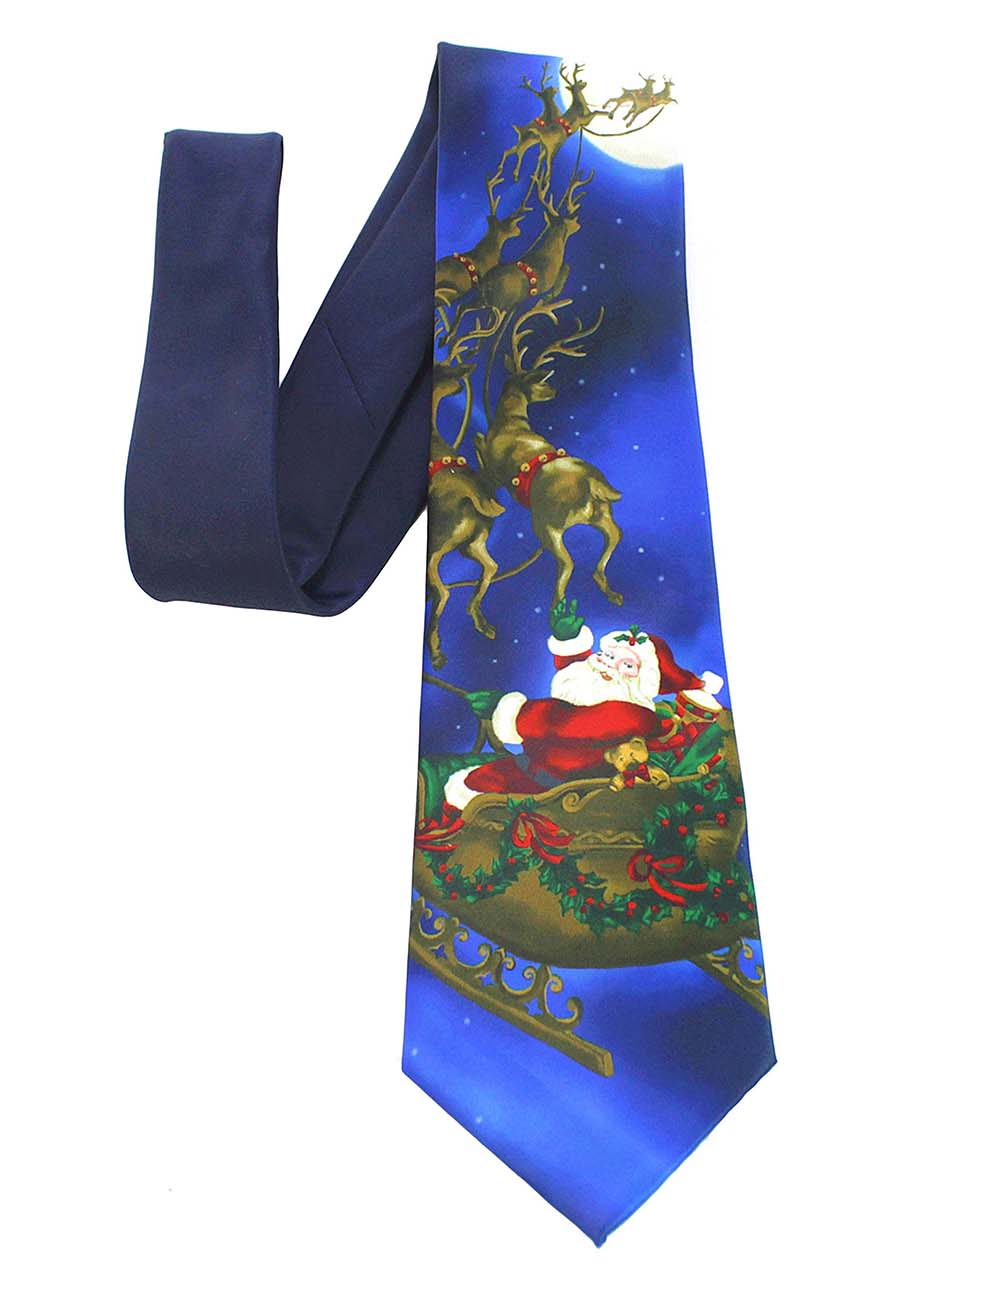 Ricnais Quality Christmas Tie For Men 9cm Designer Snowman Animal Tree Printed Novelty Mens Gift Festival Necktie For Christmas